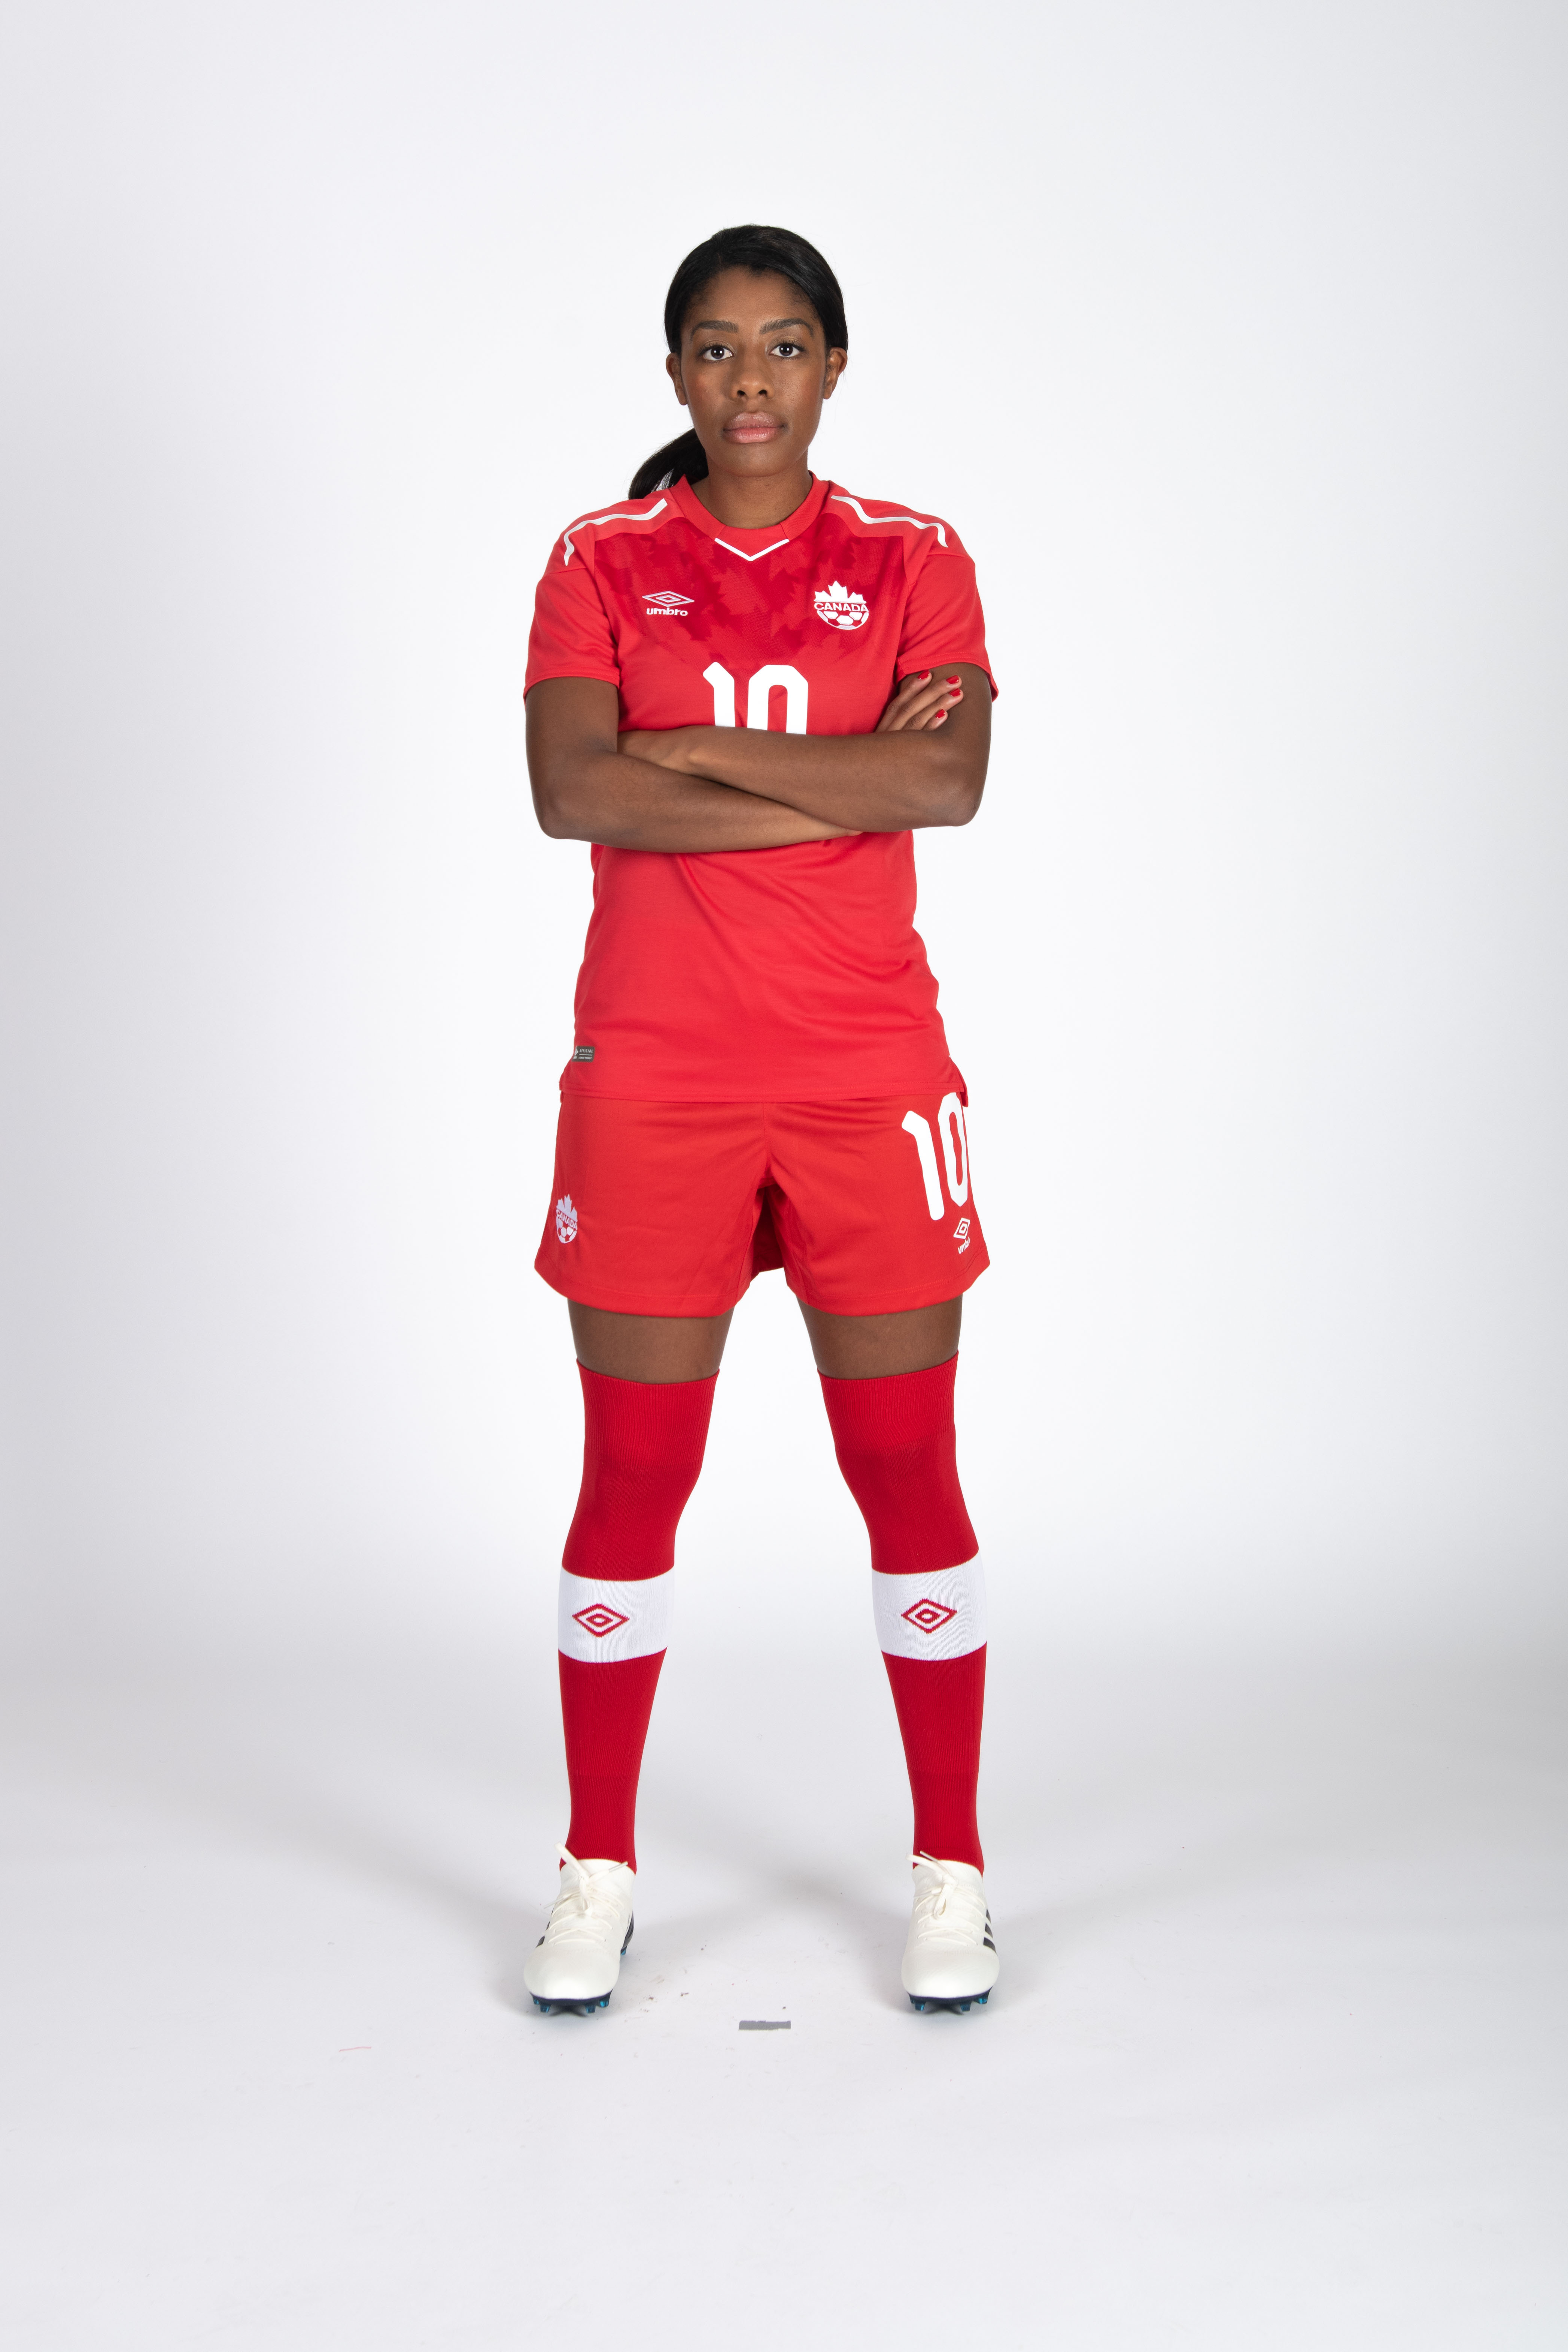 20180604_CANWNT_Lawrence_byBazyl09